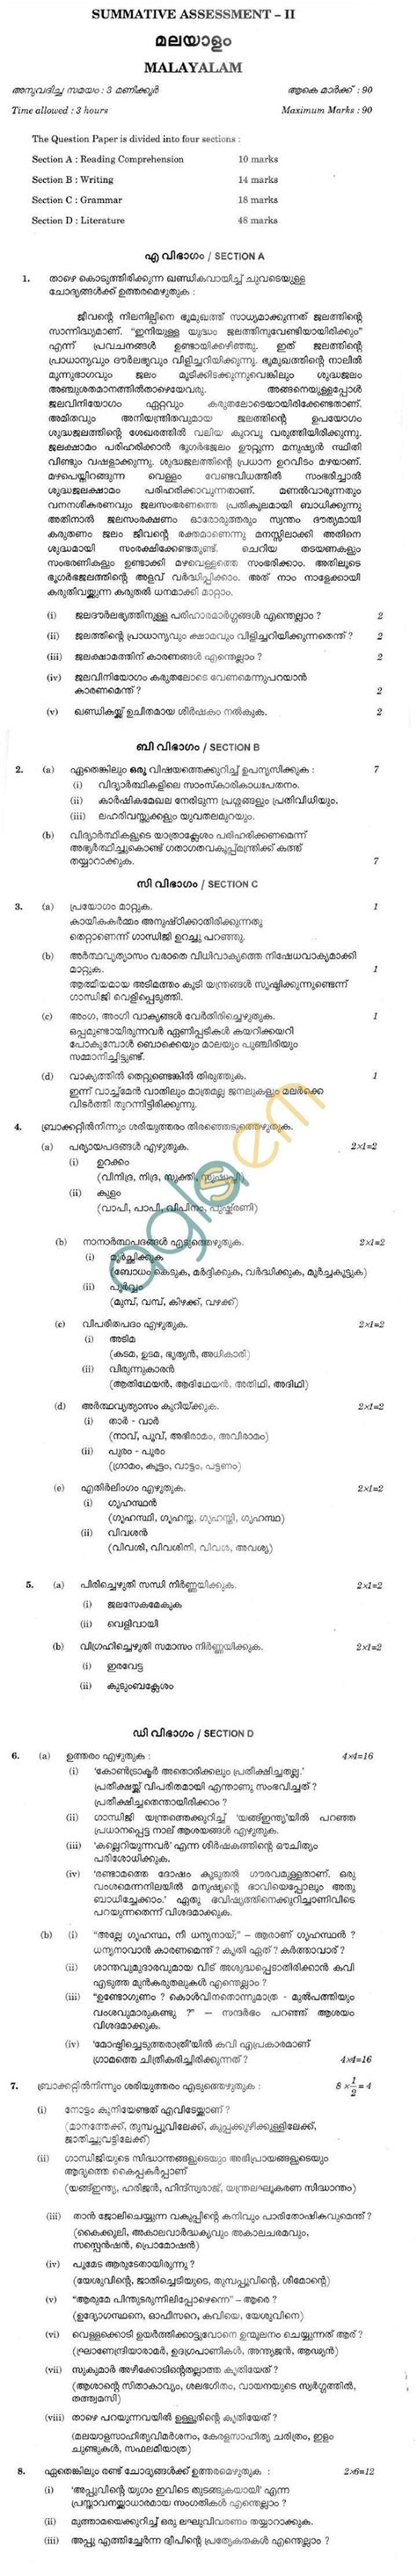 pattern word meaning in malayalam cbse board exam class 10 sa2 sle question paper